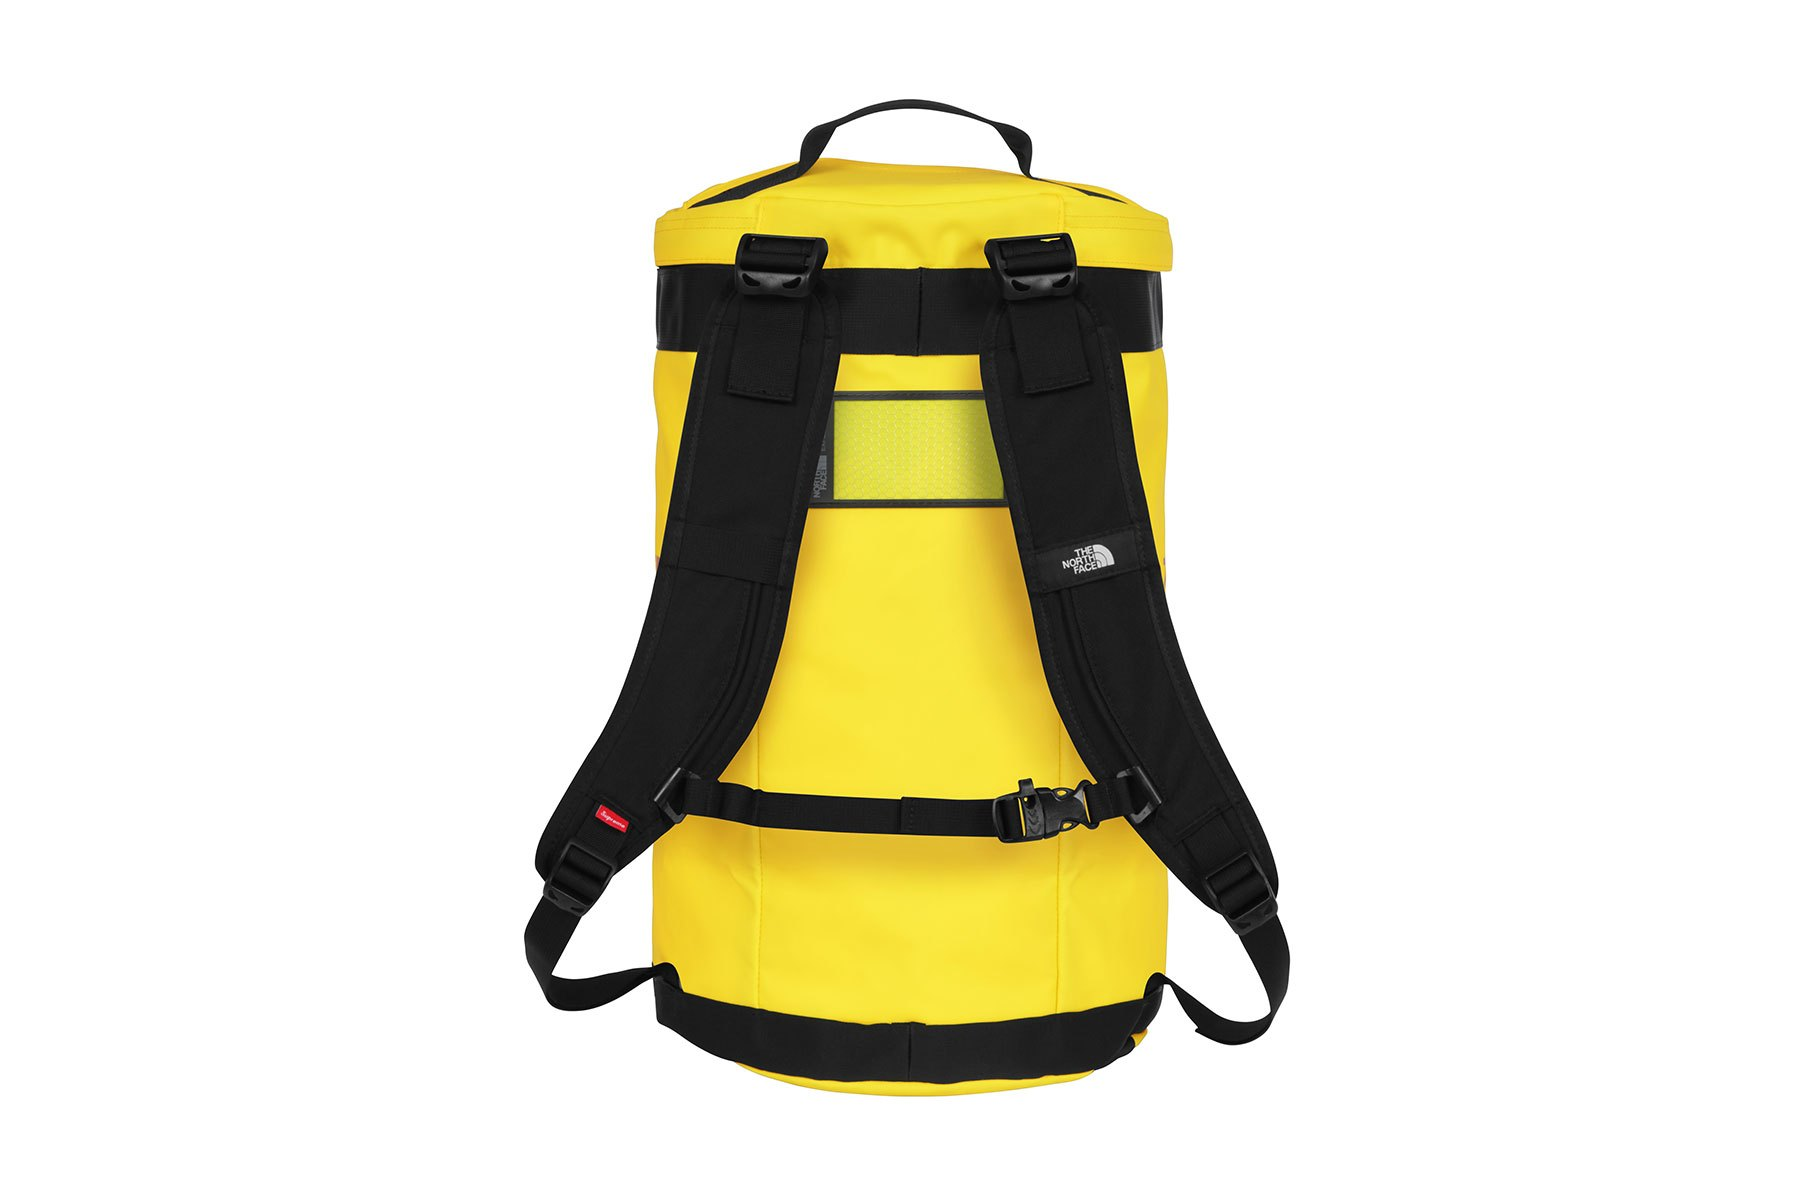 supreme-the-north-face-2017-spring-summer-yellow-big-haul-backpack-31